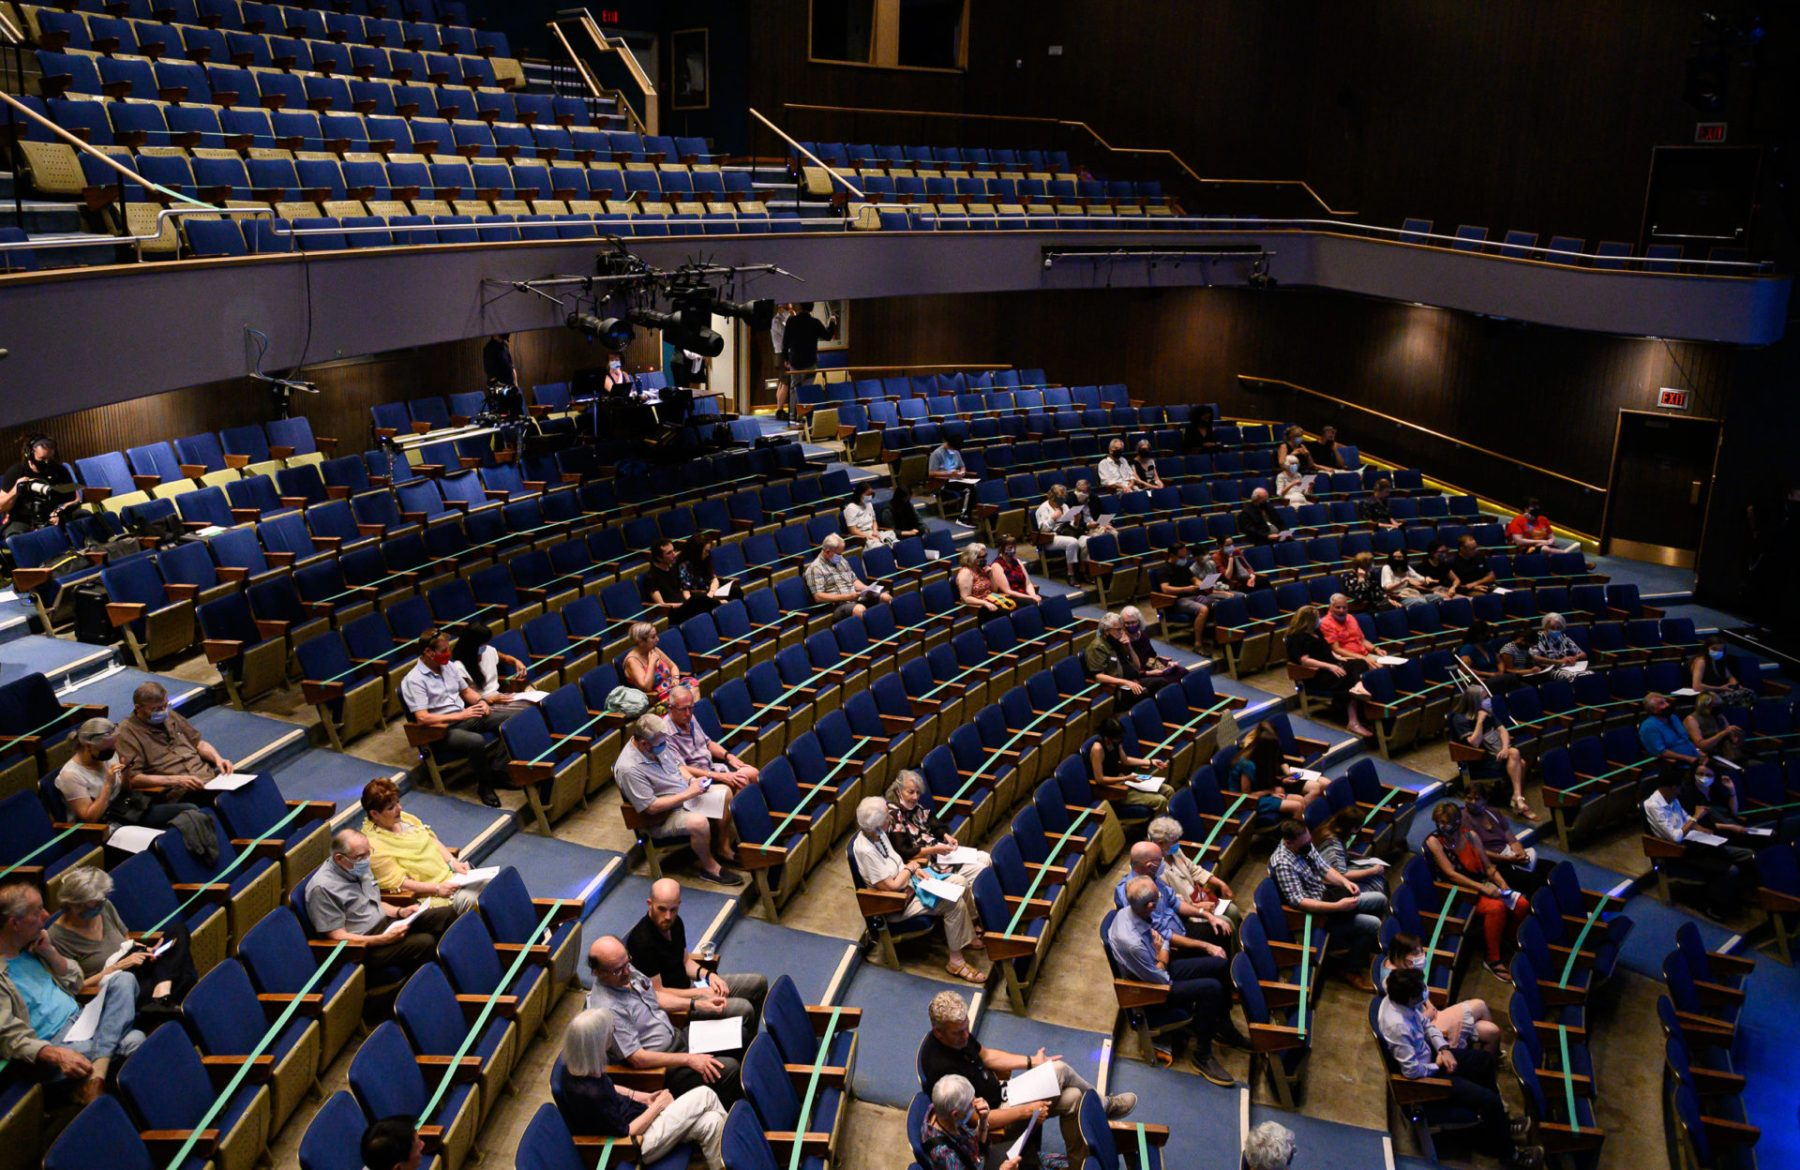 audience members seated spaced apart at The Kessler Academy 2021 event at Vancouver Playhouse